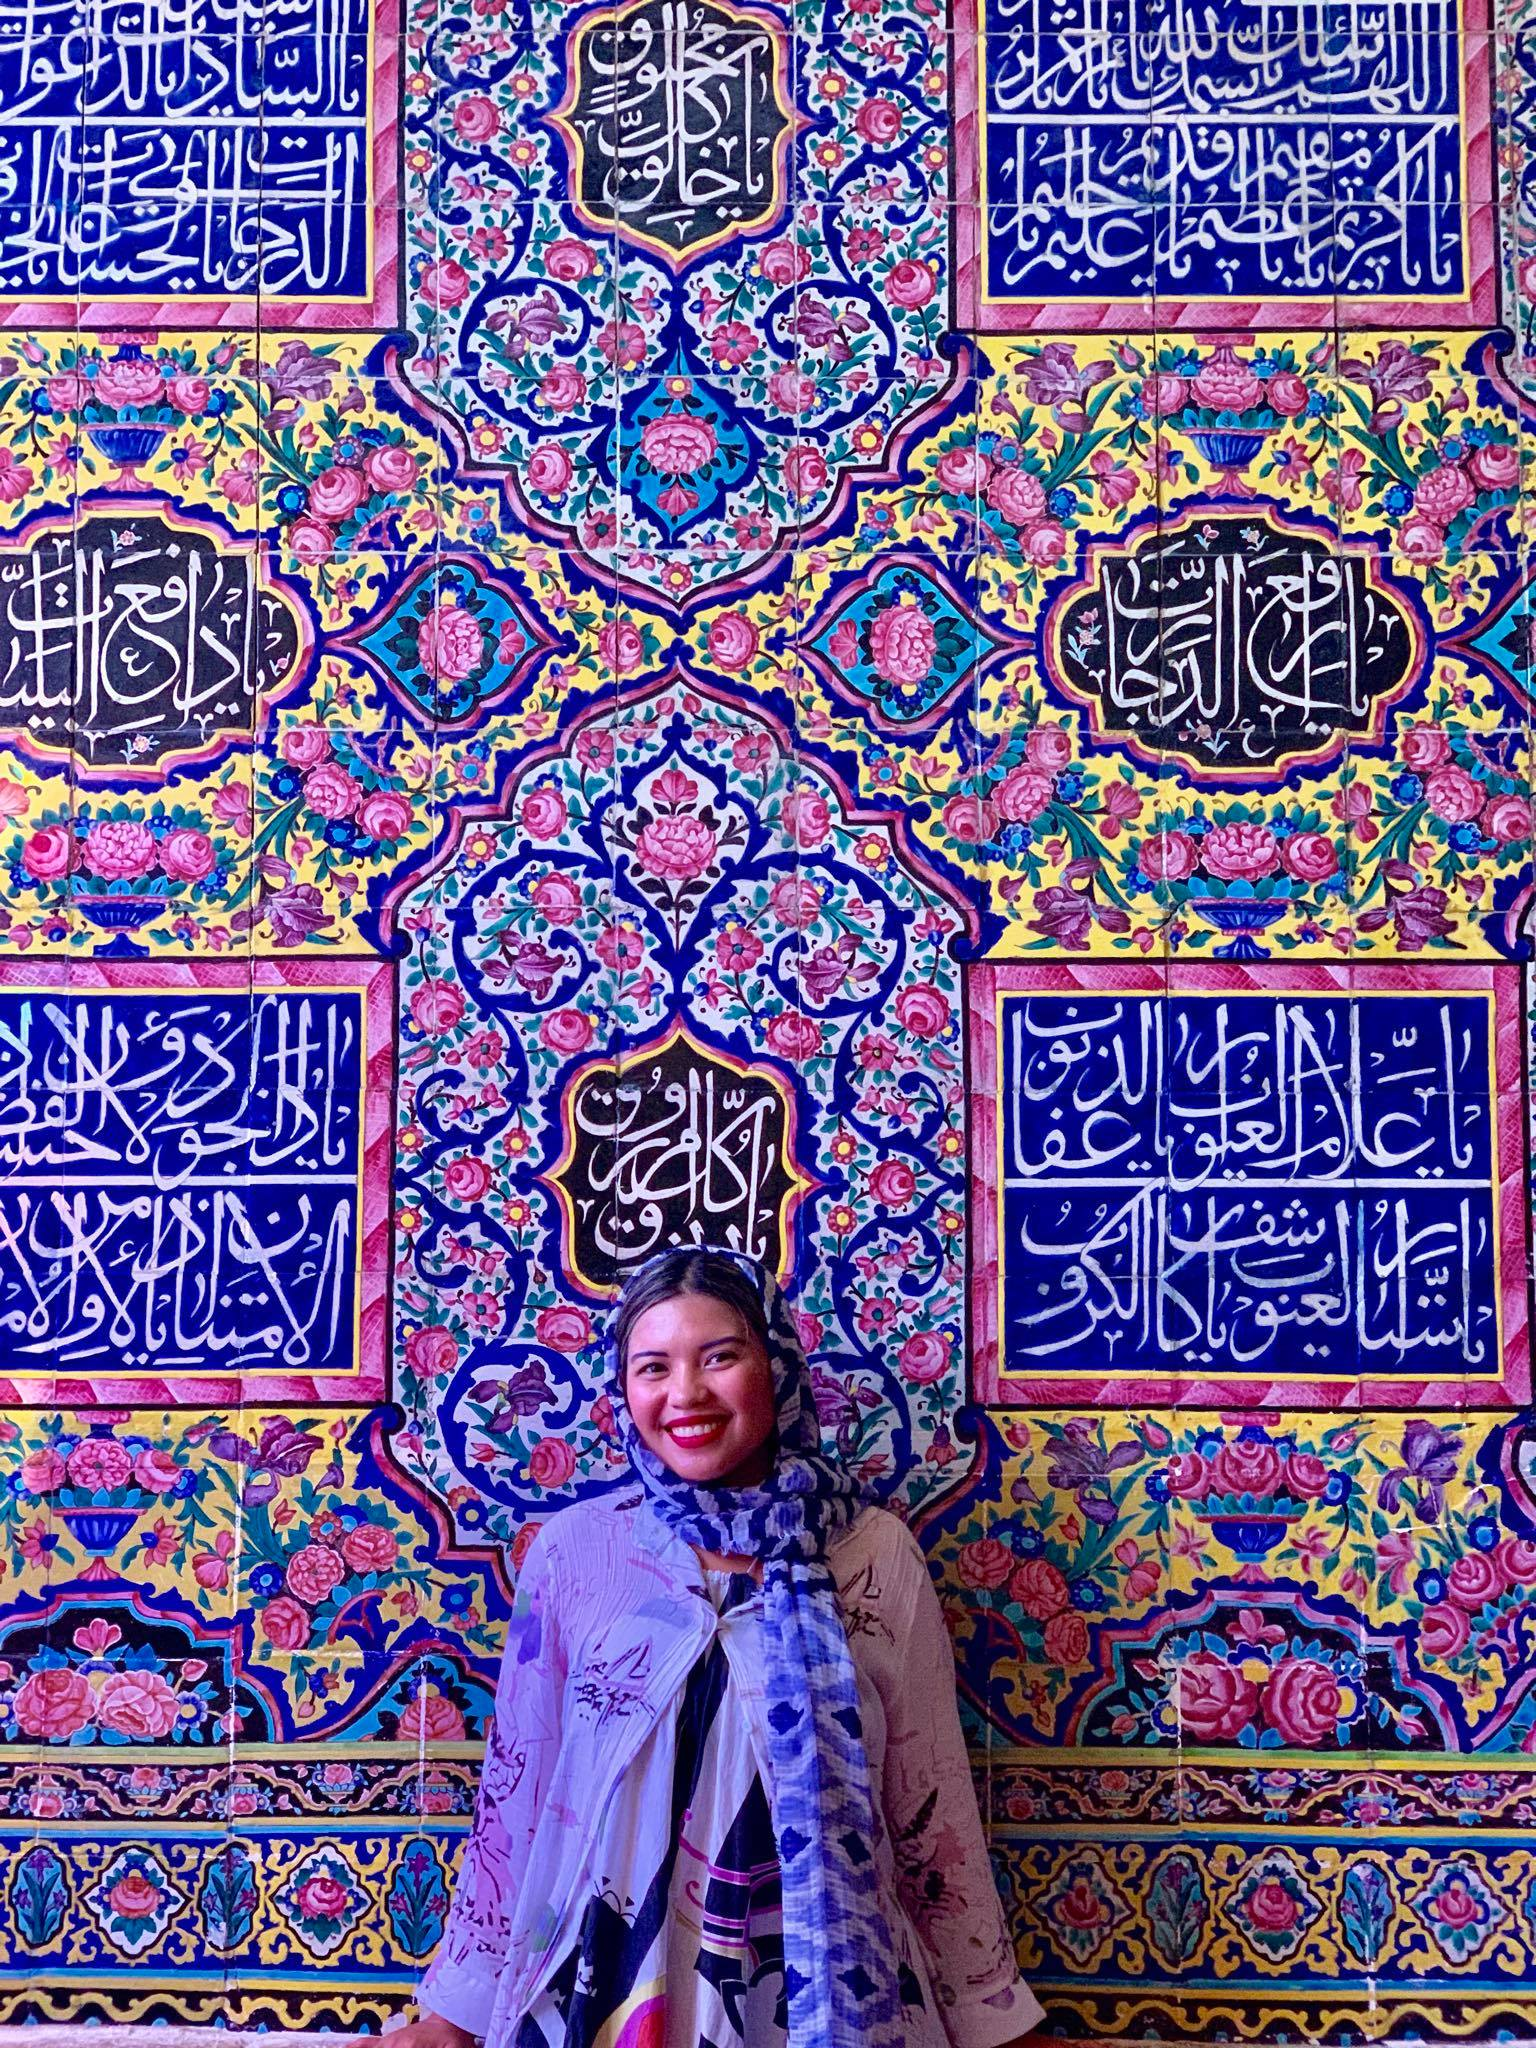 Kach Solo Travels in 2019 Full day tour of Shiraz43.jpg